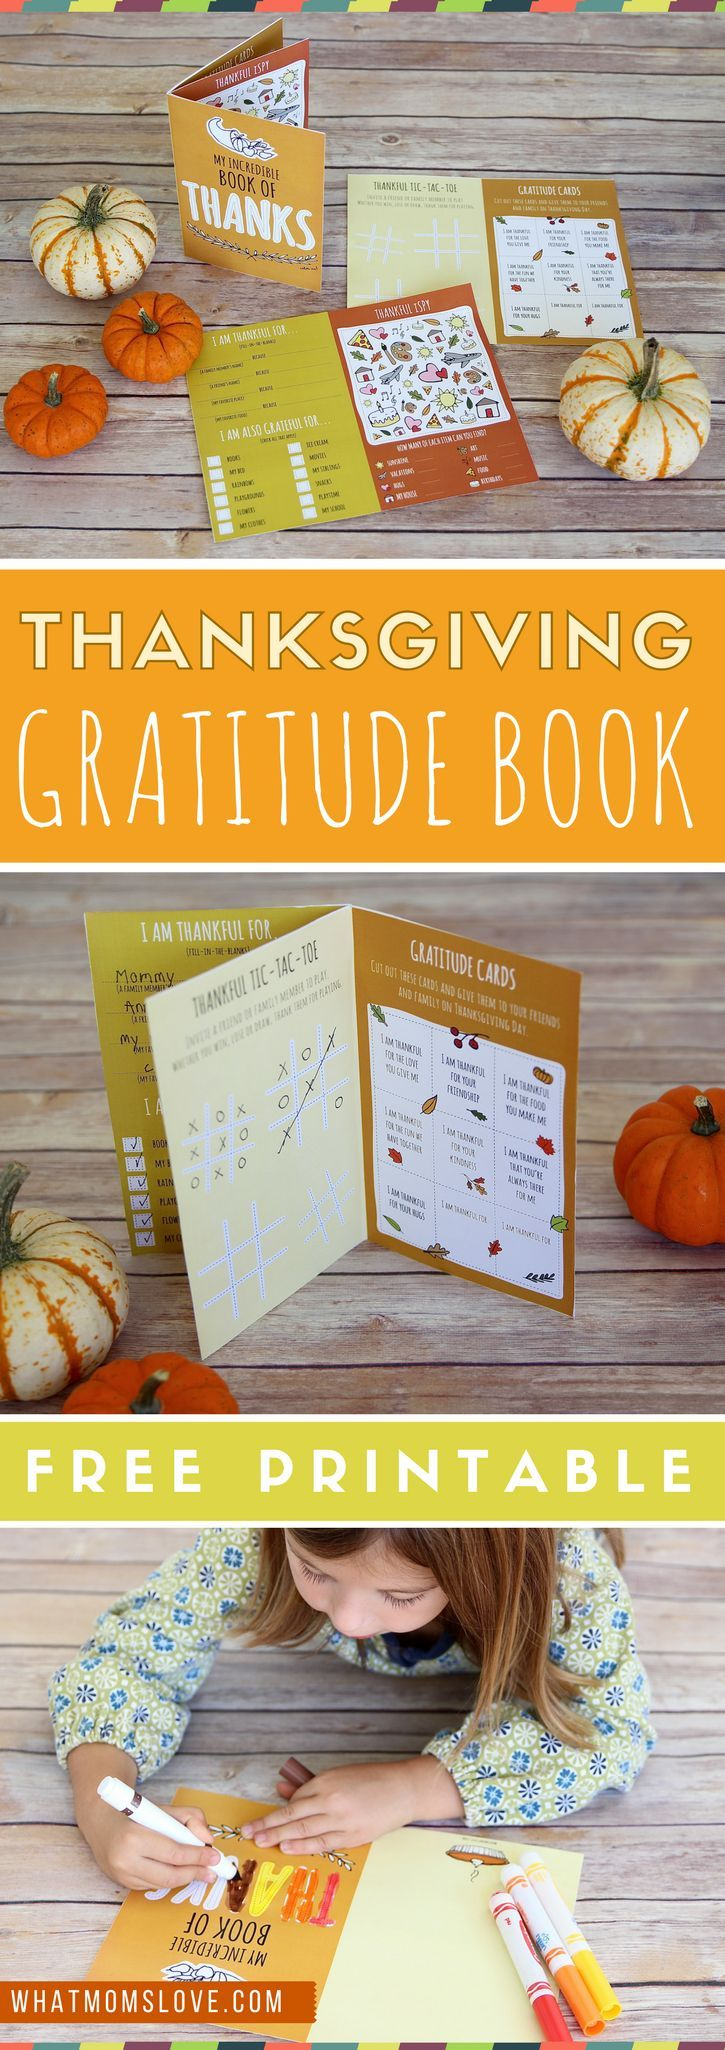 Easy Thanksgiving Activity for Kids Free